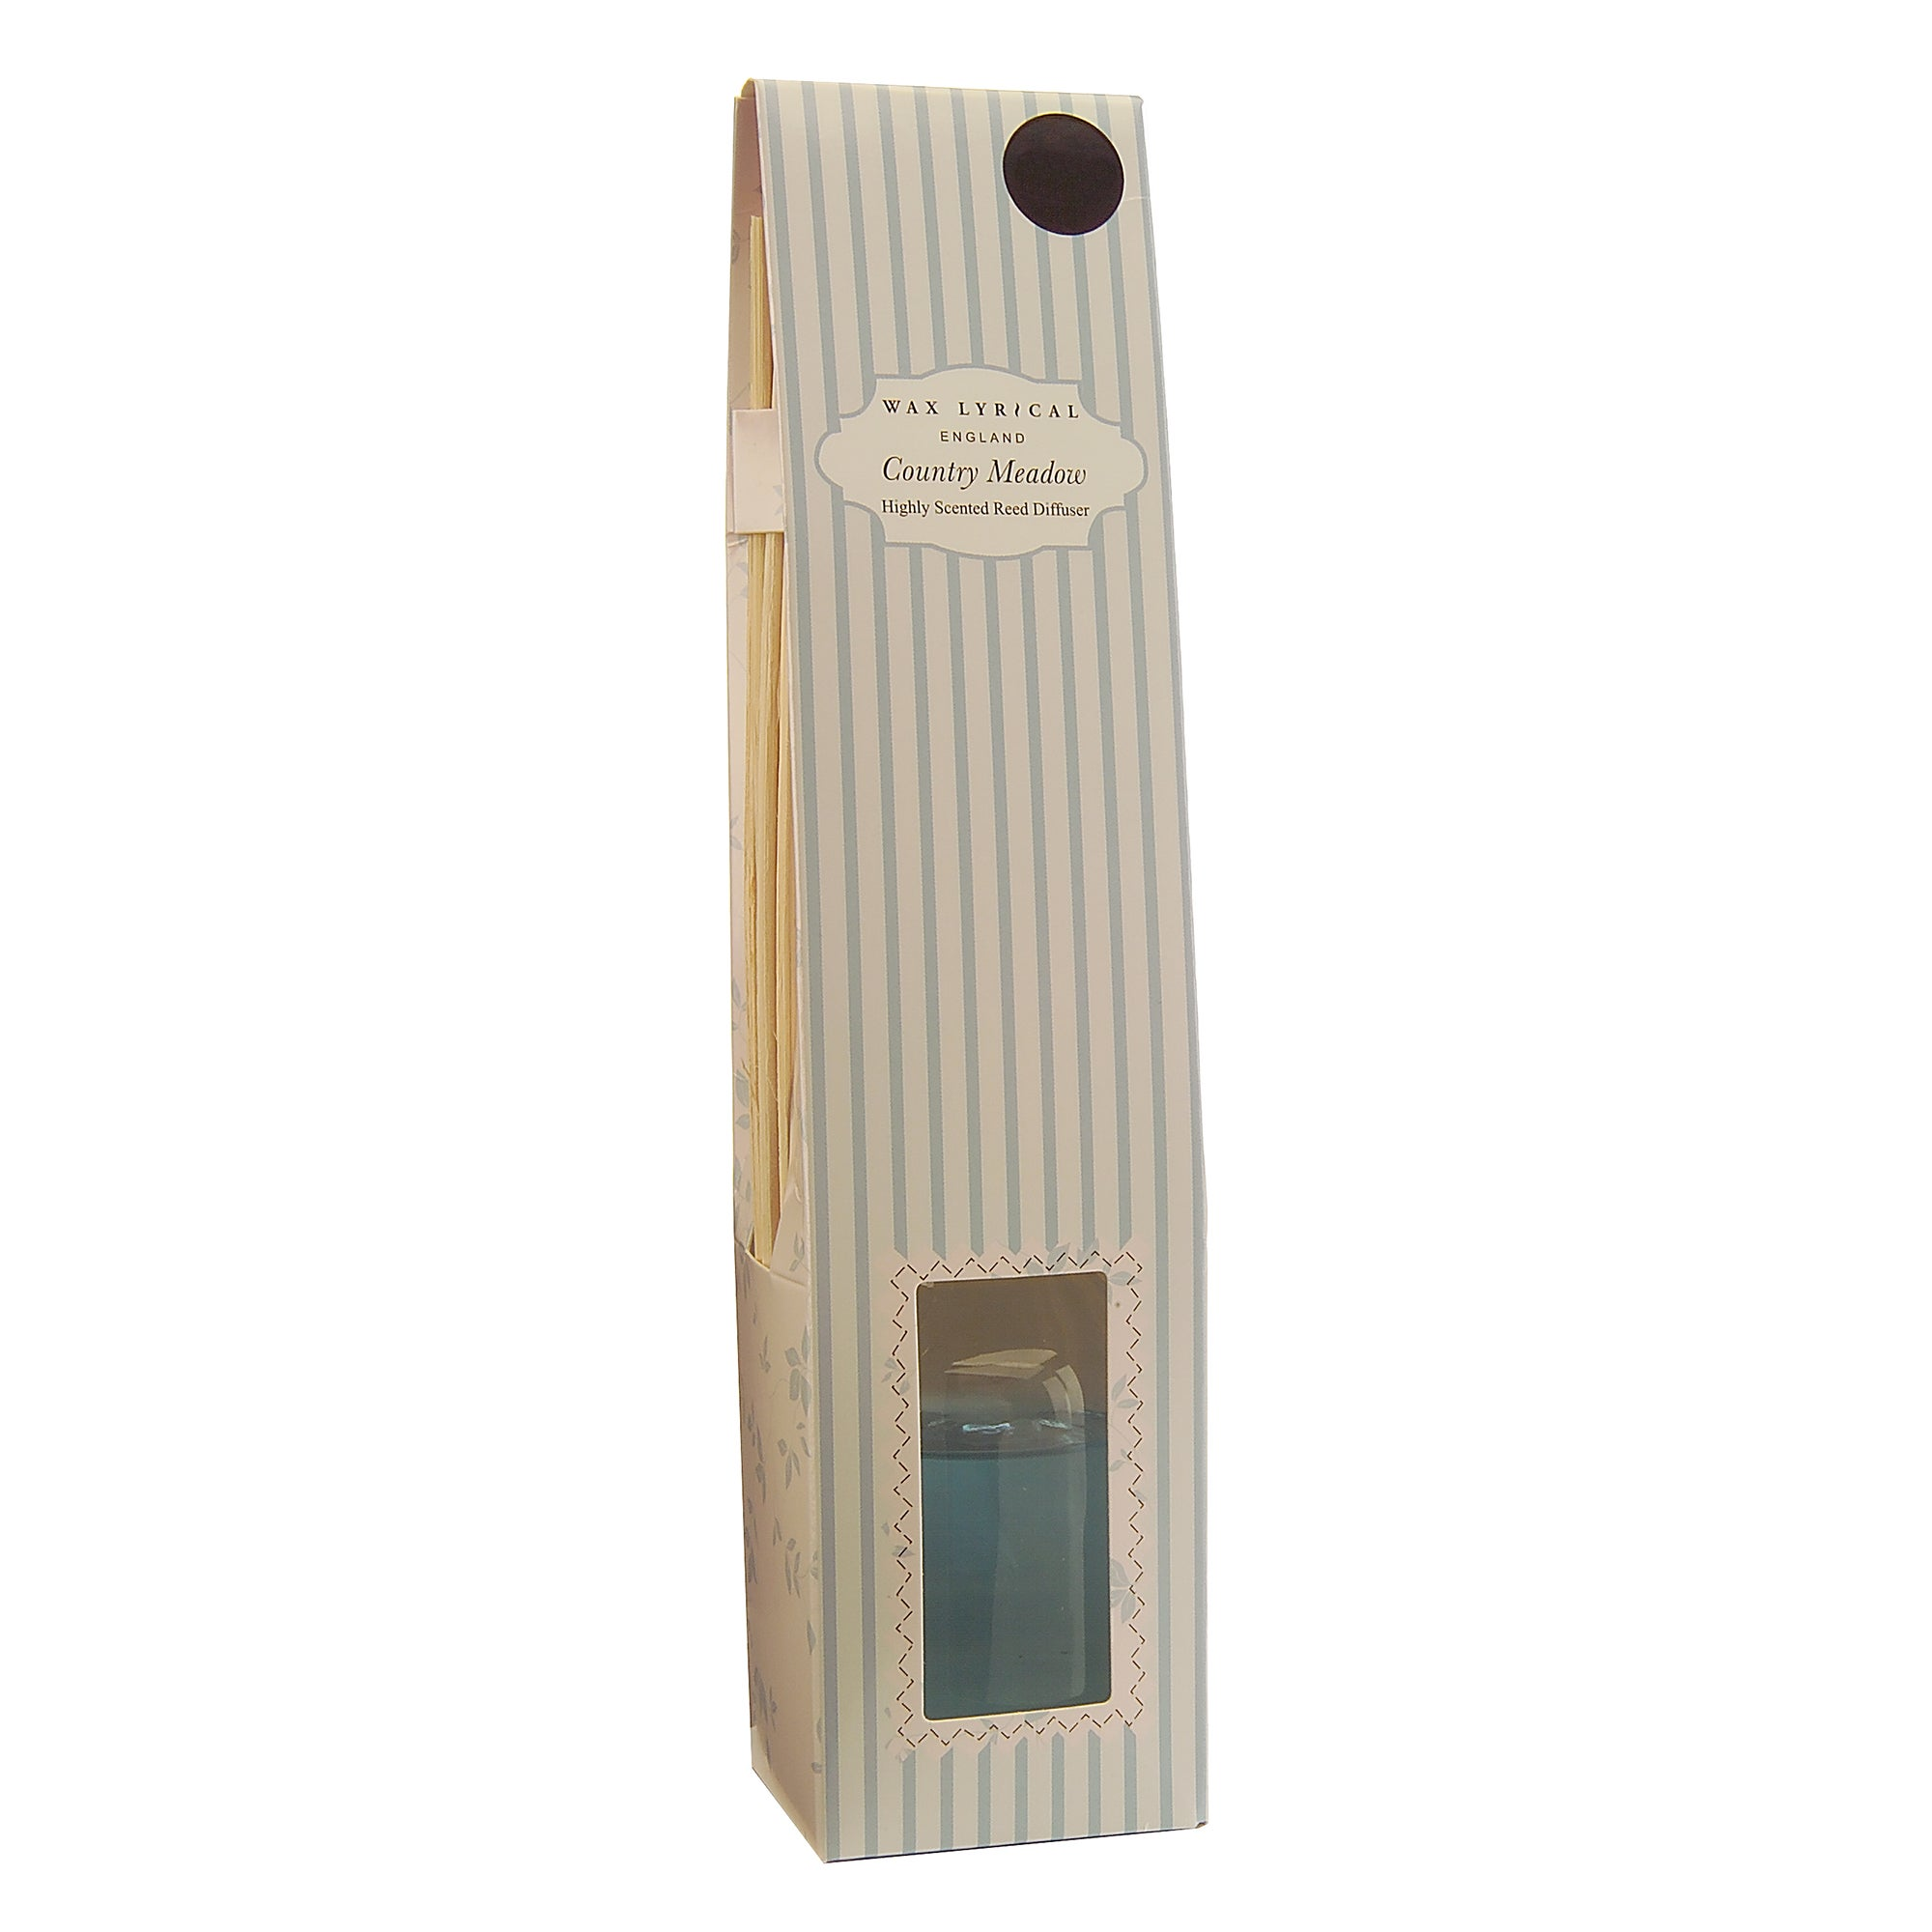 Wax Lyrical Country Meadow 100ml Reed Diffuser